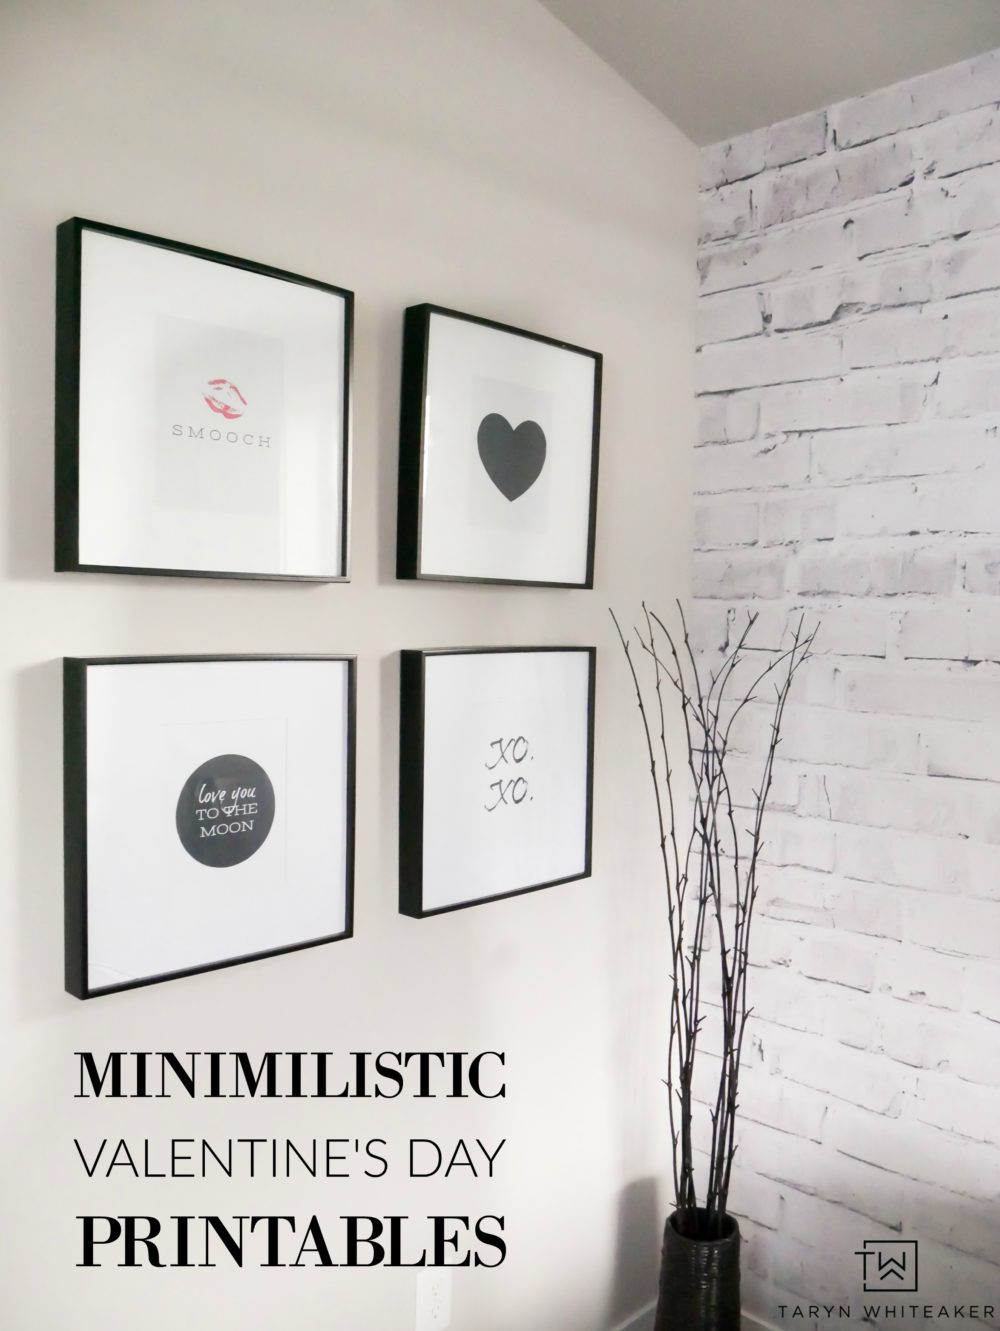 Like clean modern decor but also want to add a little Valentine's Day flare to your home? Download these Free Minimalist Valentine's Day Printables!